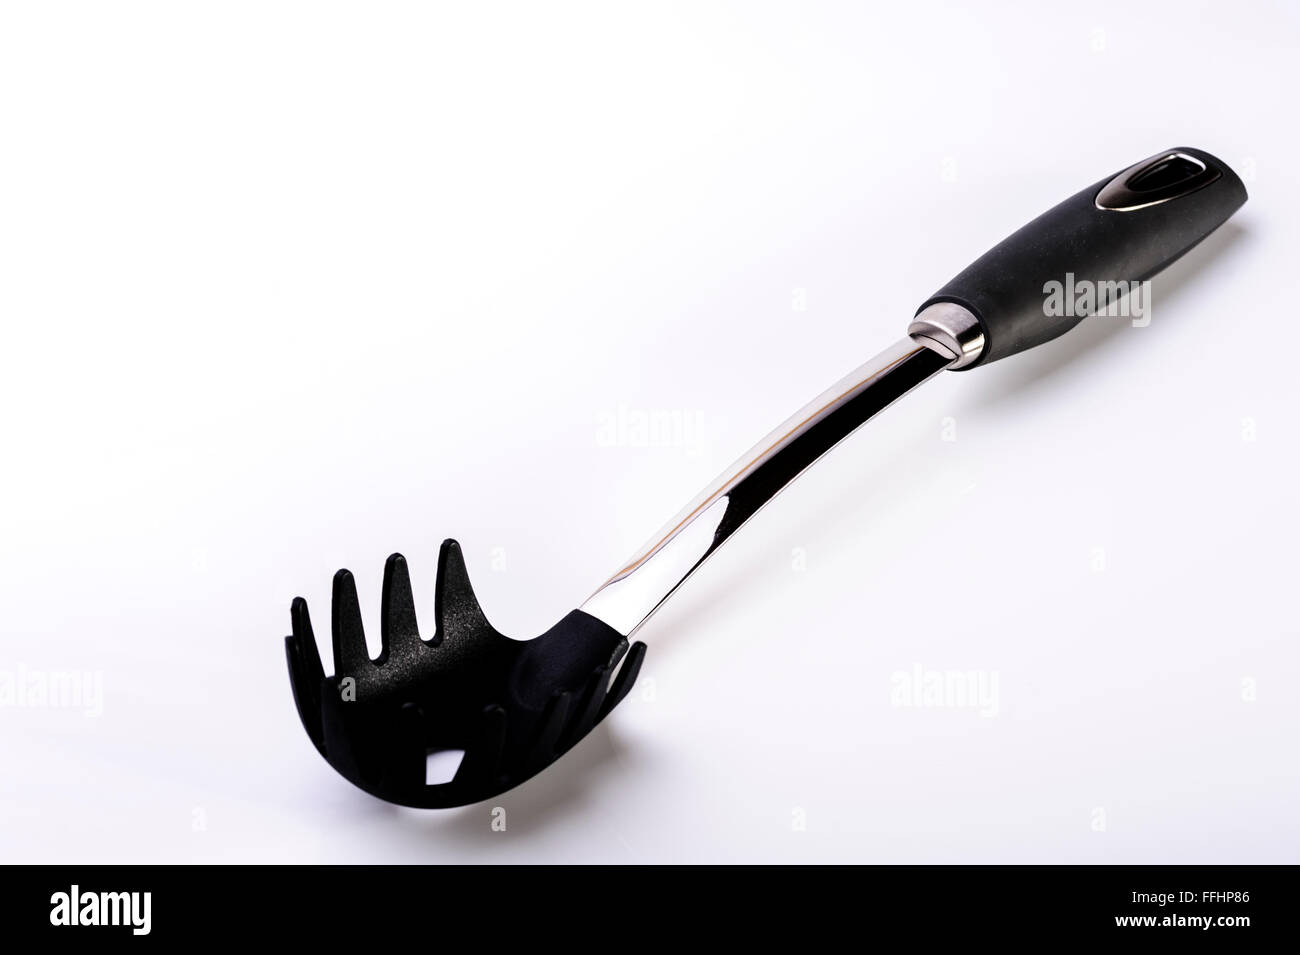 Spaghetti or pasta scoop.Kitchen equipment untensil. - Stock Image